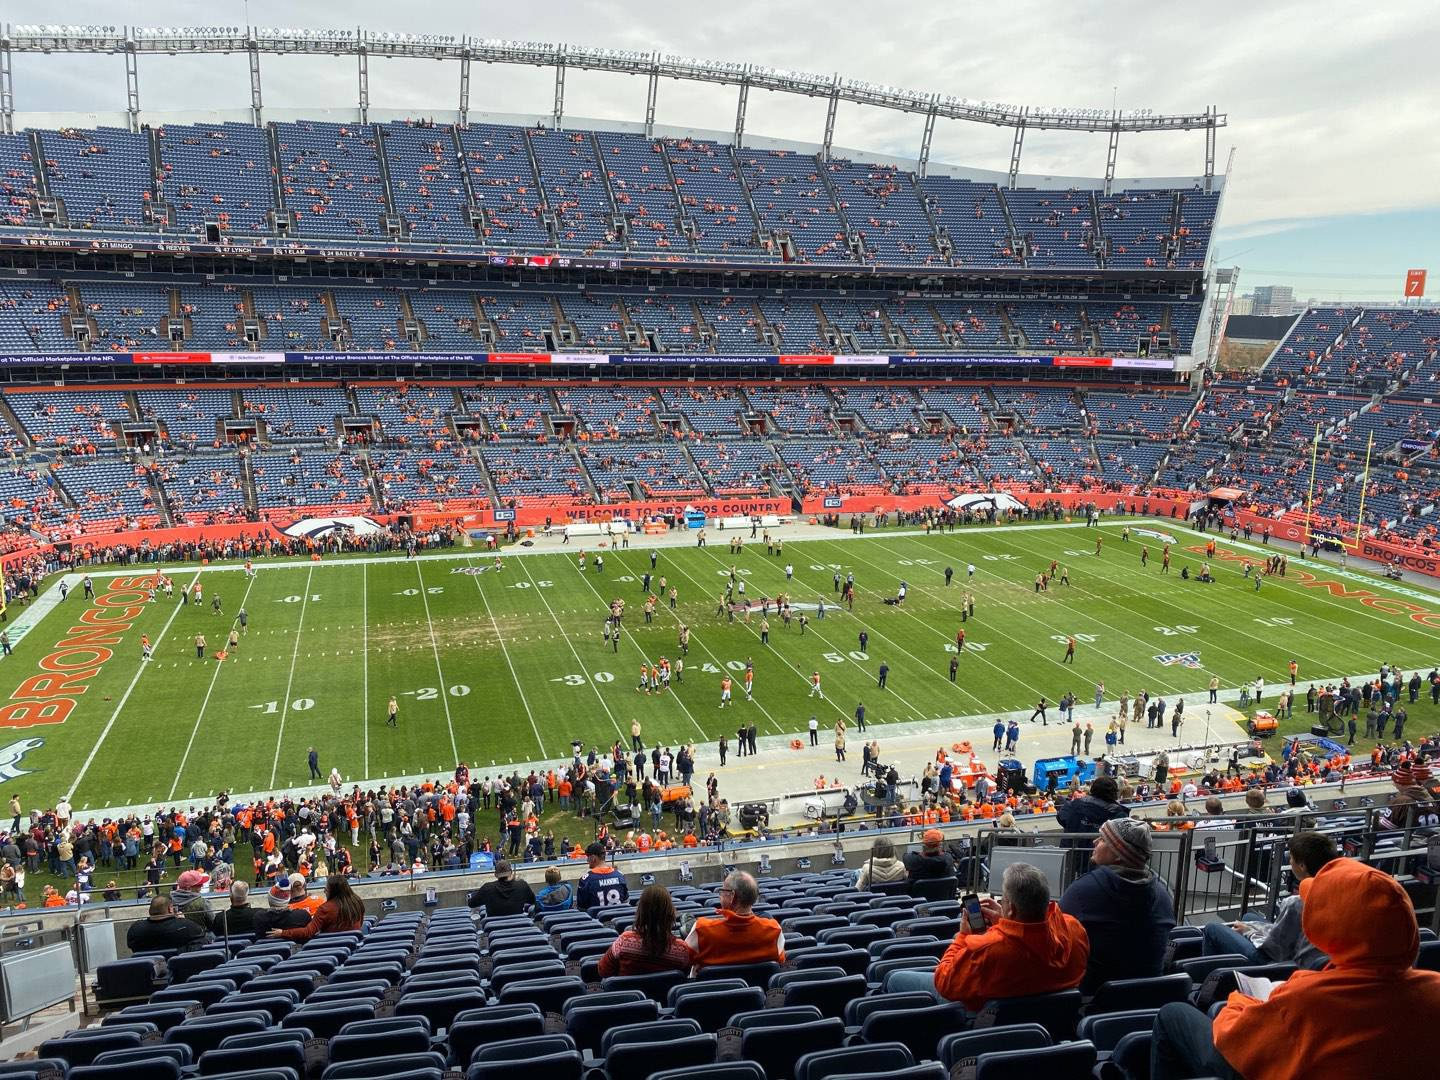 Empower Field at Mile High Stadium Section 312 Rangée 16 Siège 10